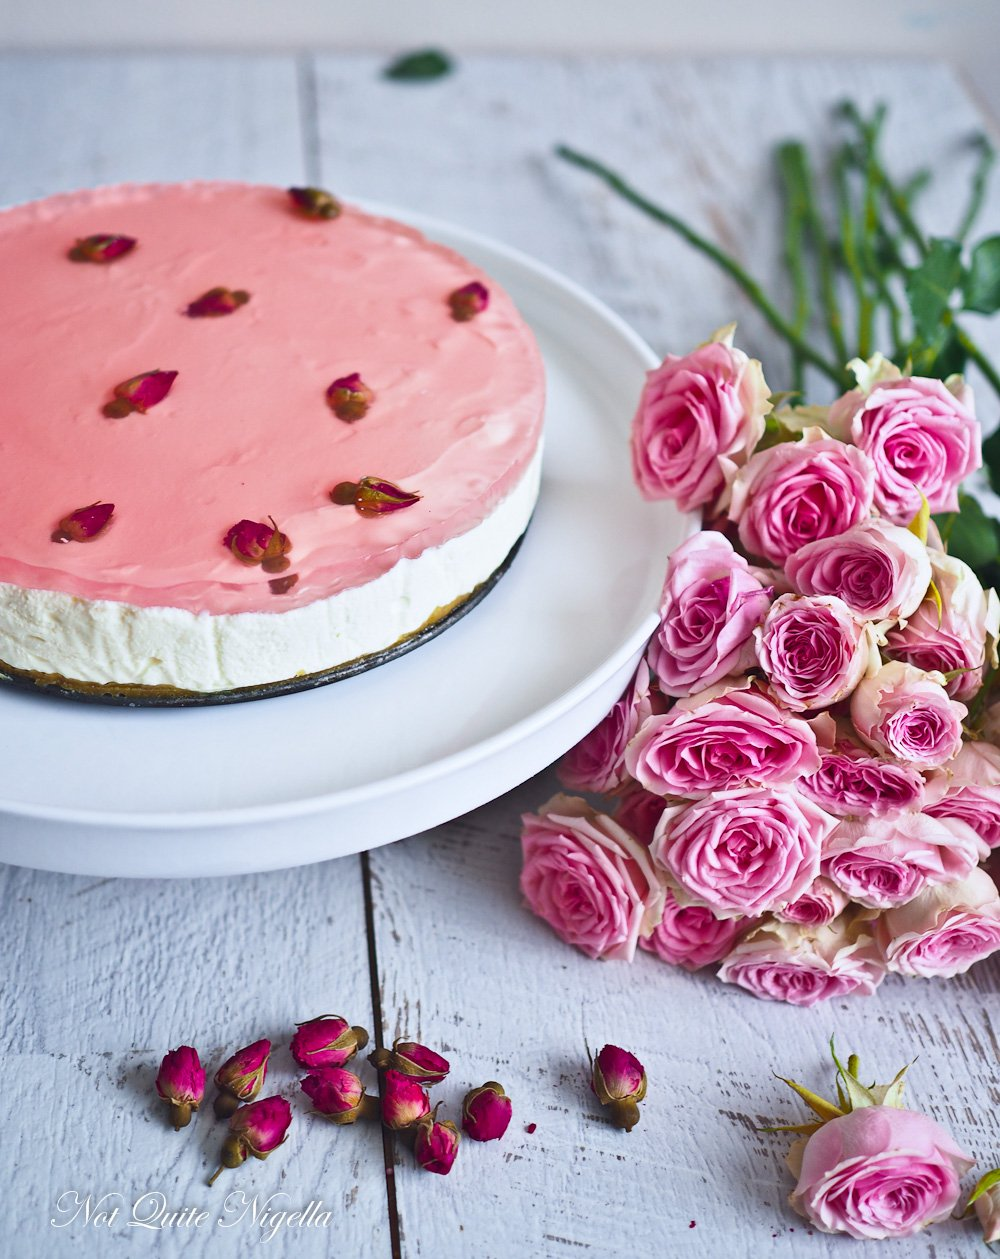 Rose Turkish Delight Cheesecake